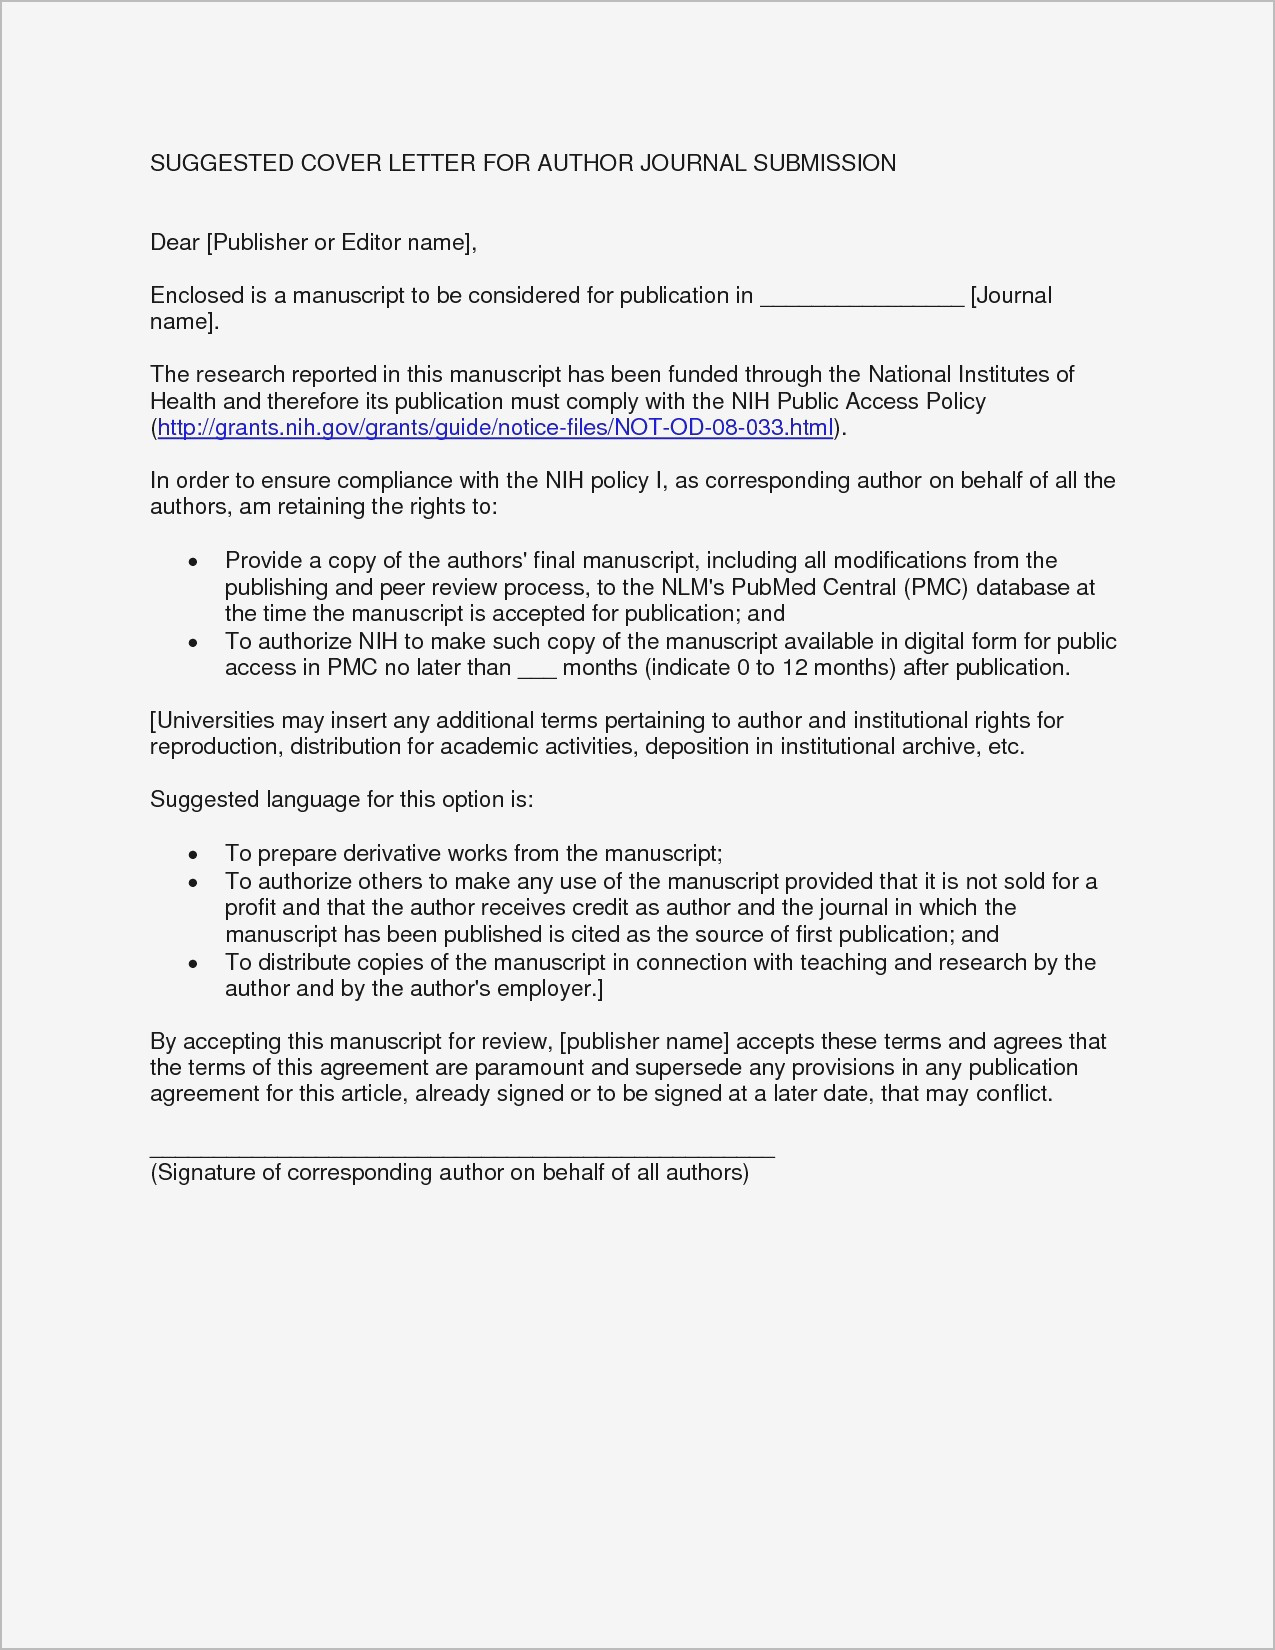 Demand Letter Template for Money Owed - Demand Letter Sample Inspirational Sample Demand Letter for Money